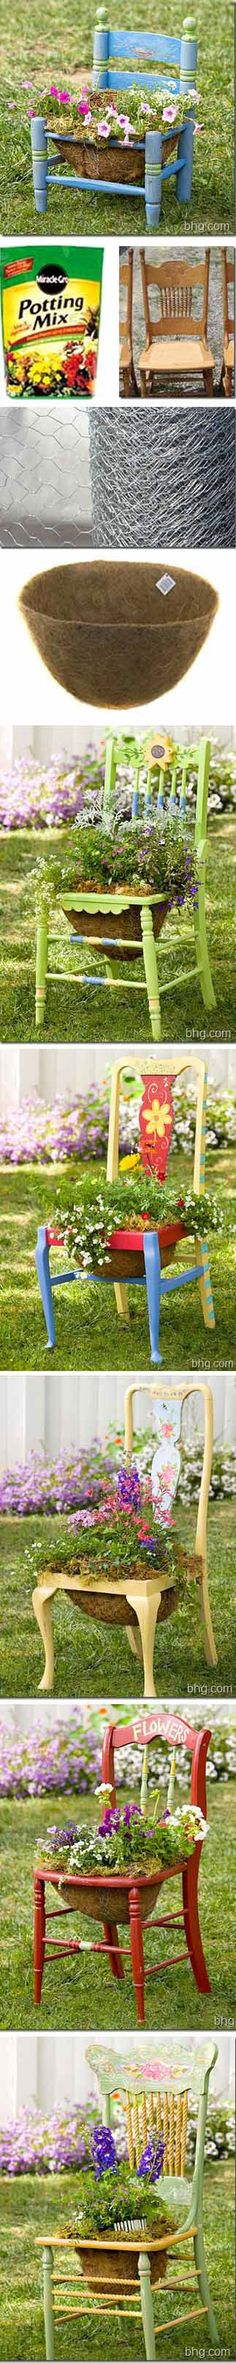 Chair planters...love